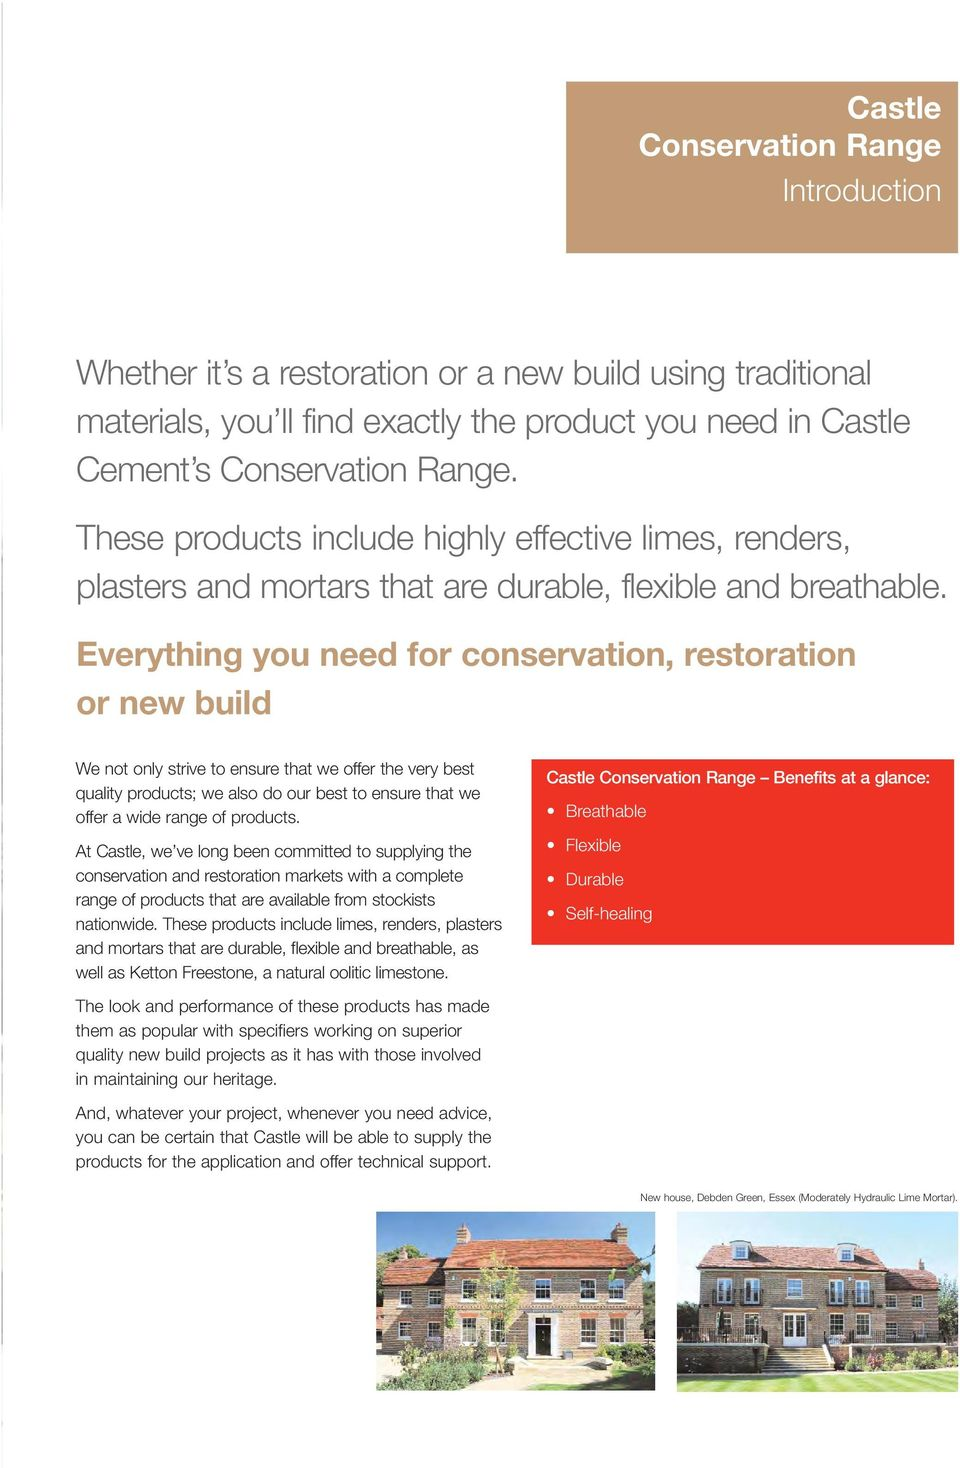 Everything you need for conservation, restoration or new build We not only strive to ensure that we offer the very best quality products; we also do our best to ensure that we offer a wide range of